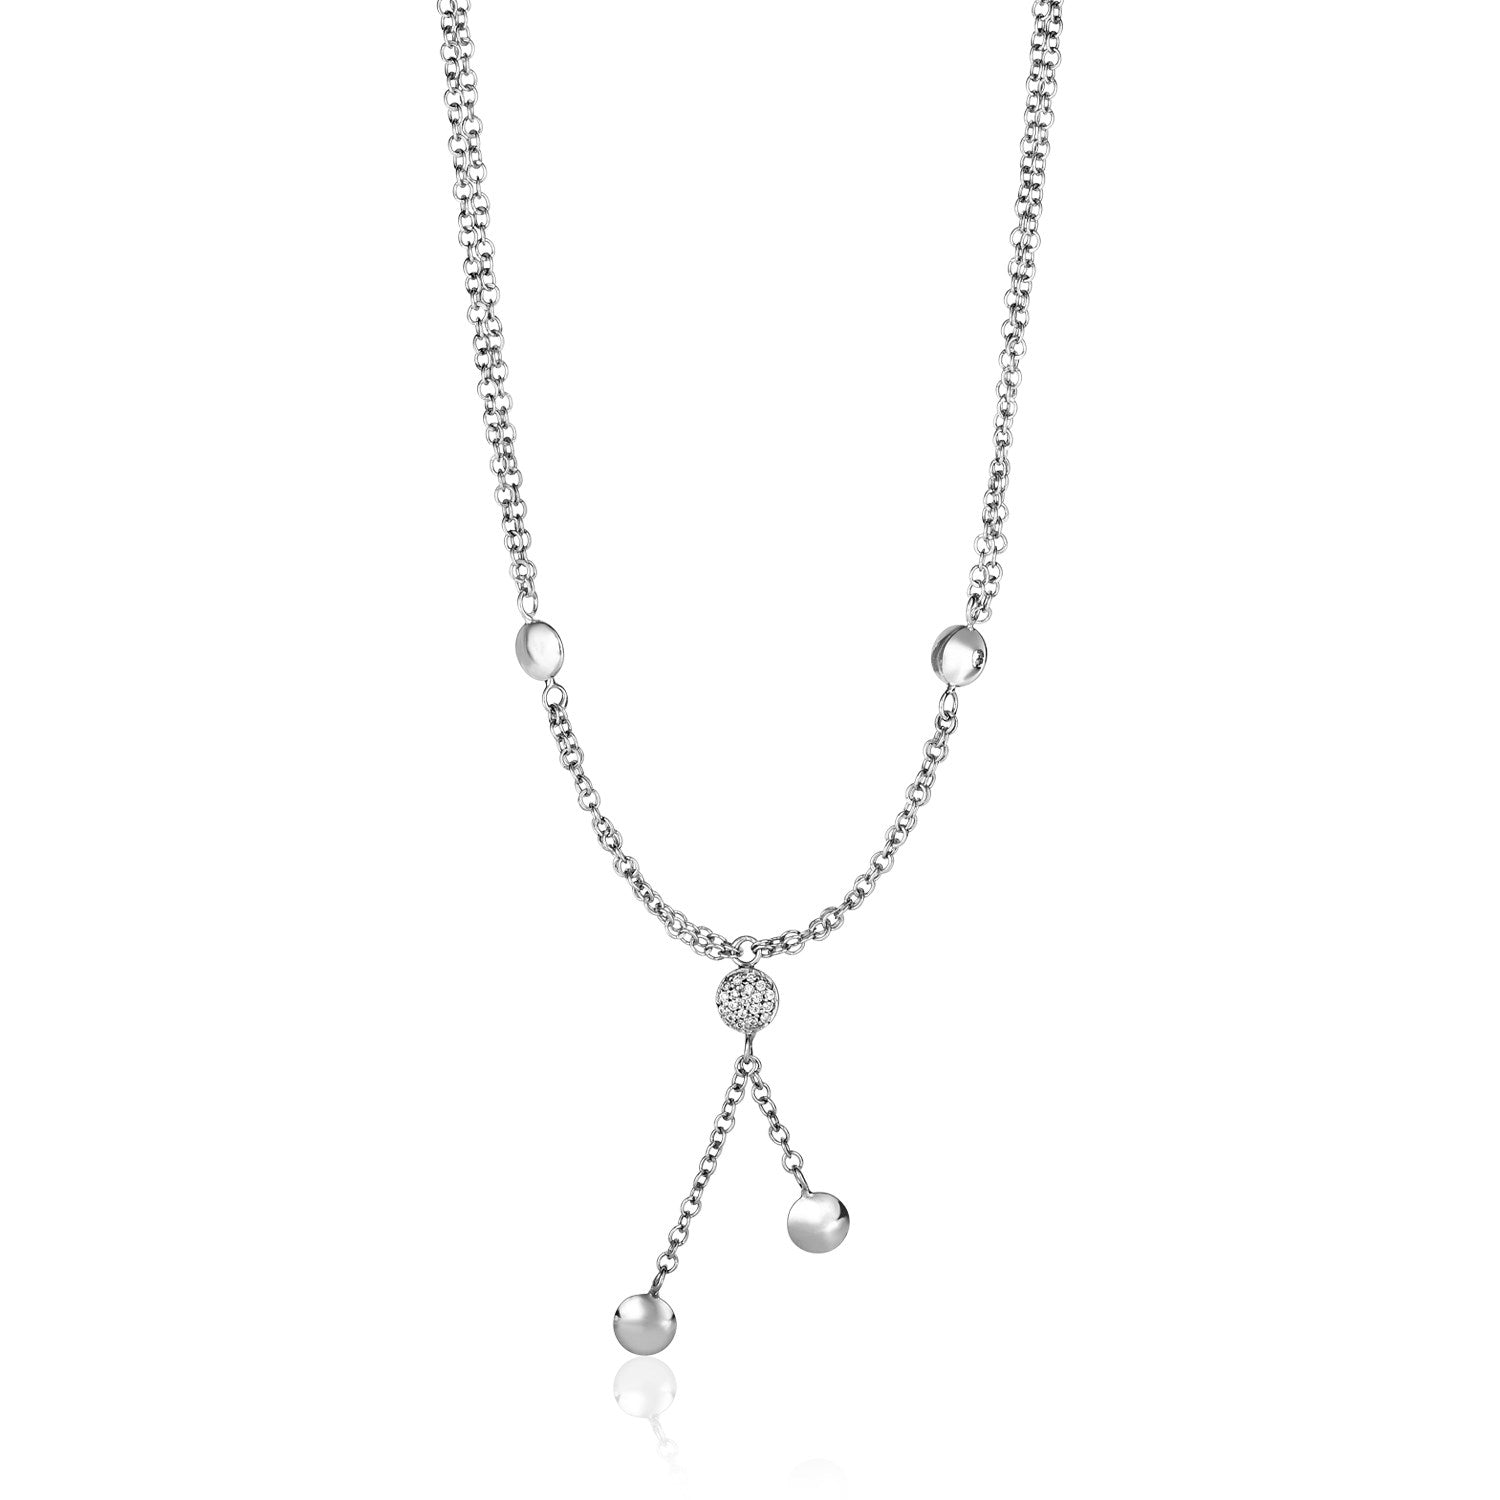 14K White Gold and Diamond 17 inch Puff Circle Drop Necklace (1/10 ct. tw.)